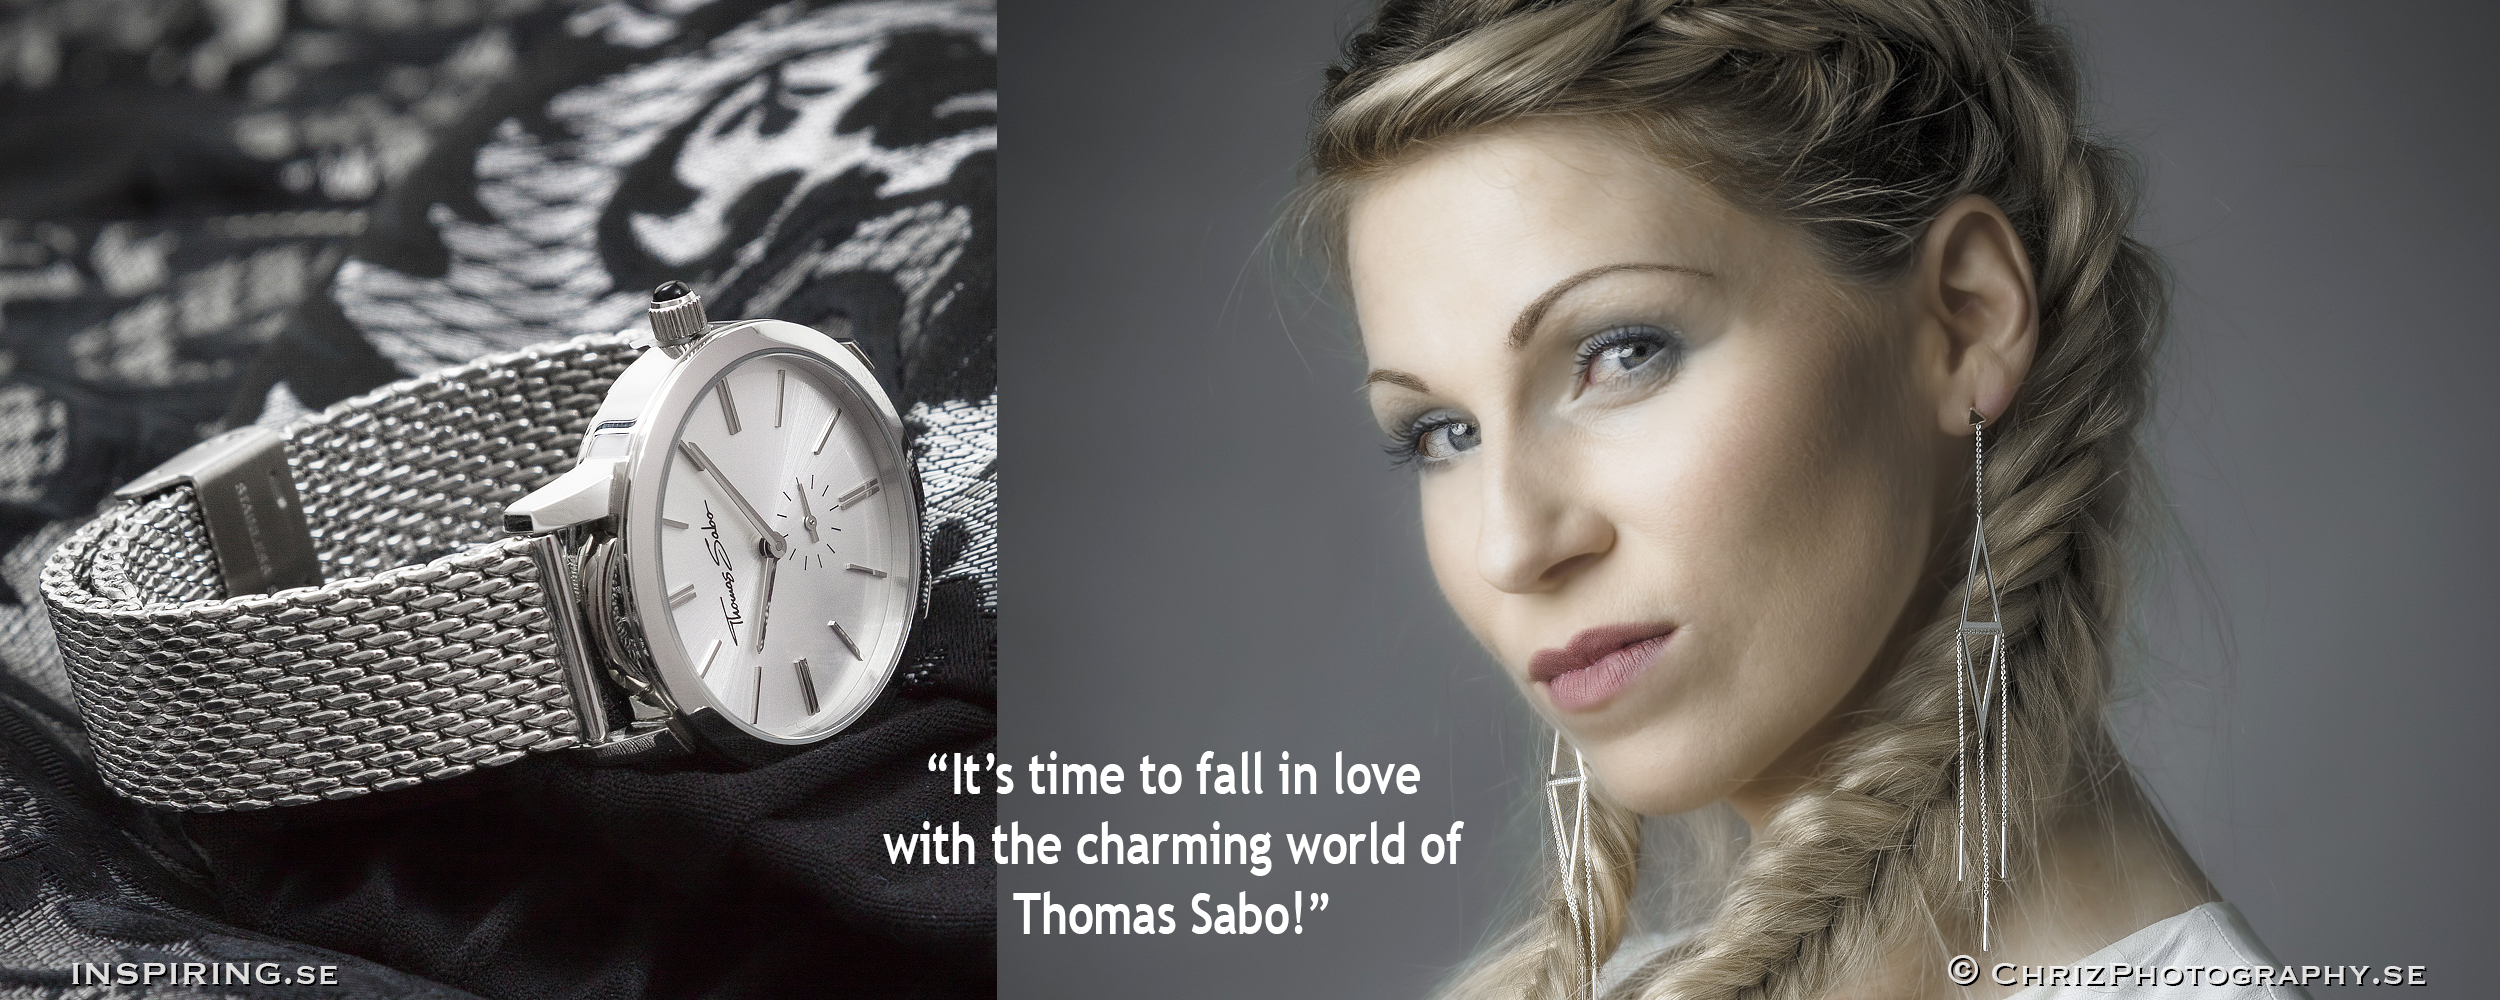 Inspiring.se_ThomasSabo_copyright_ChrizPhotography.se_Start_EN_1